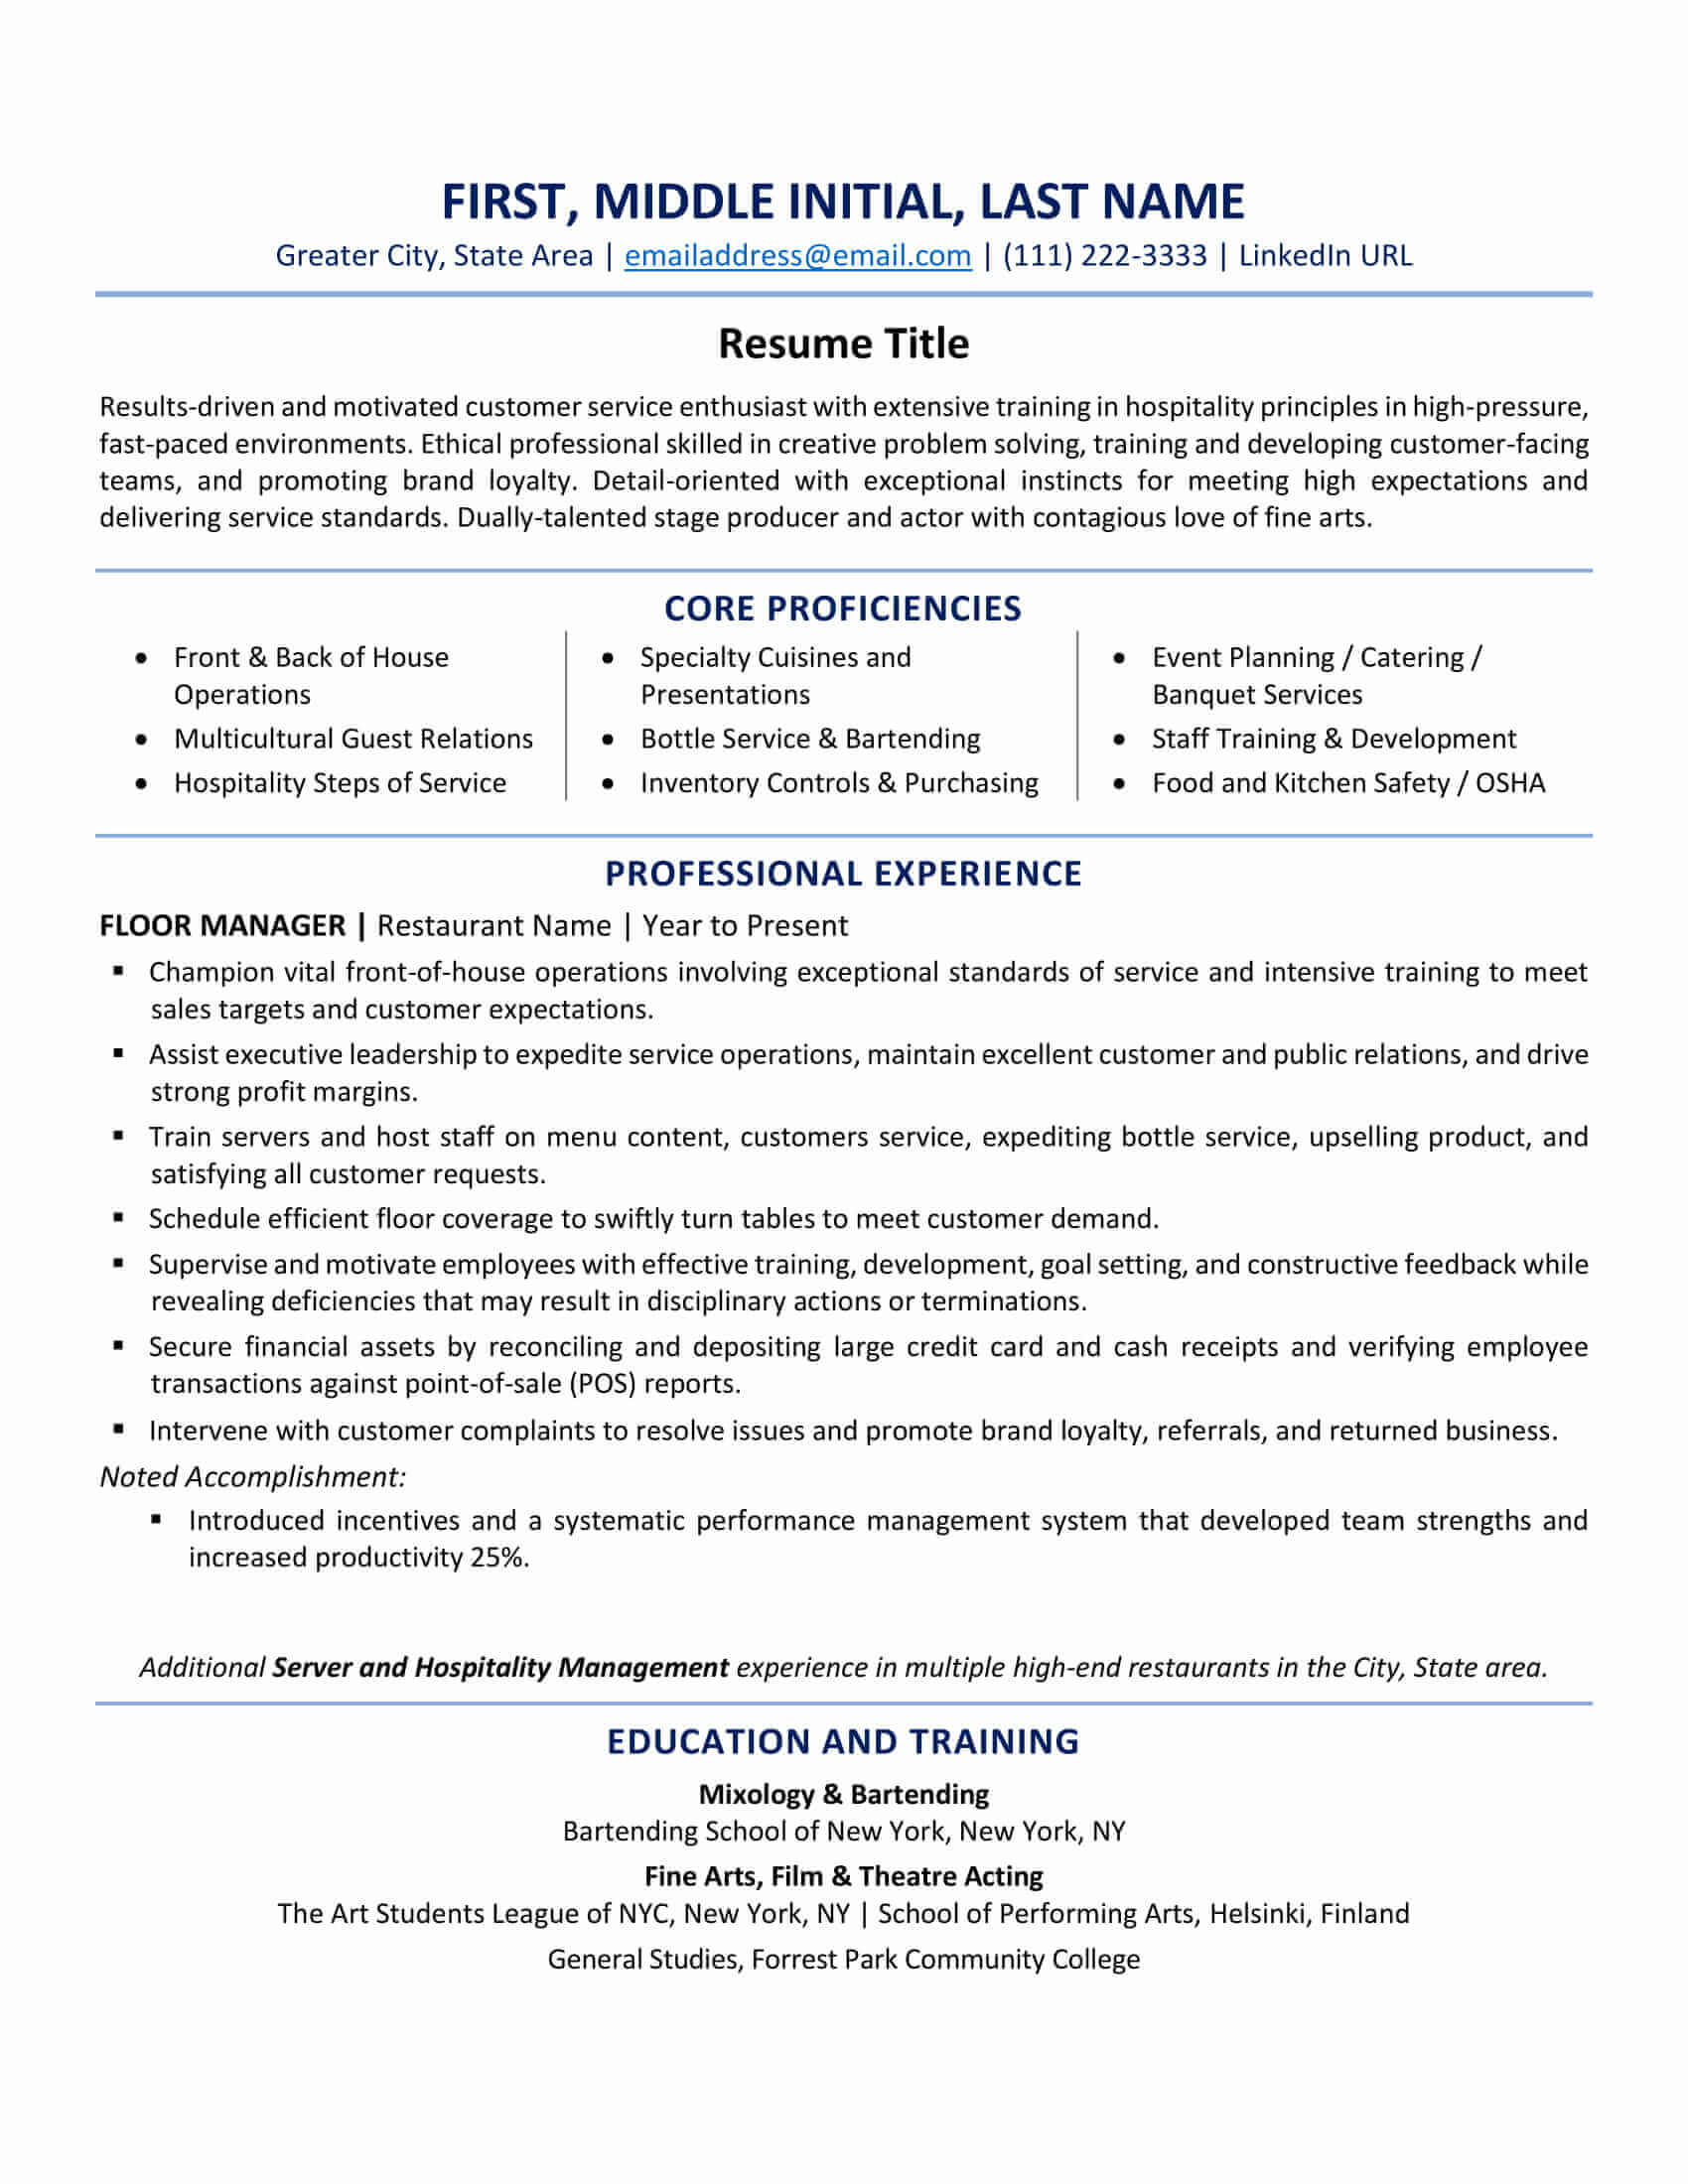 ats resume test free checker formatting examples in when moving to the us school Resume Test Resume In Ats